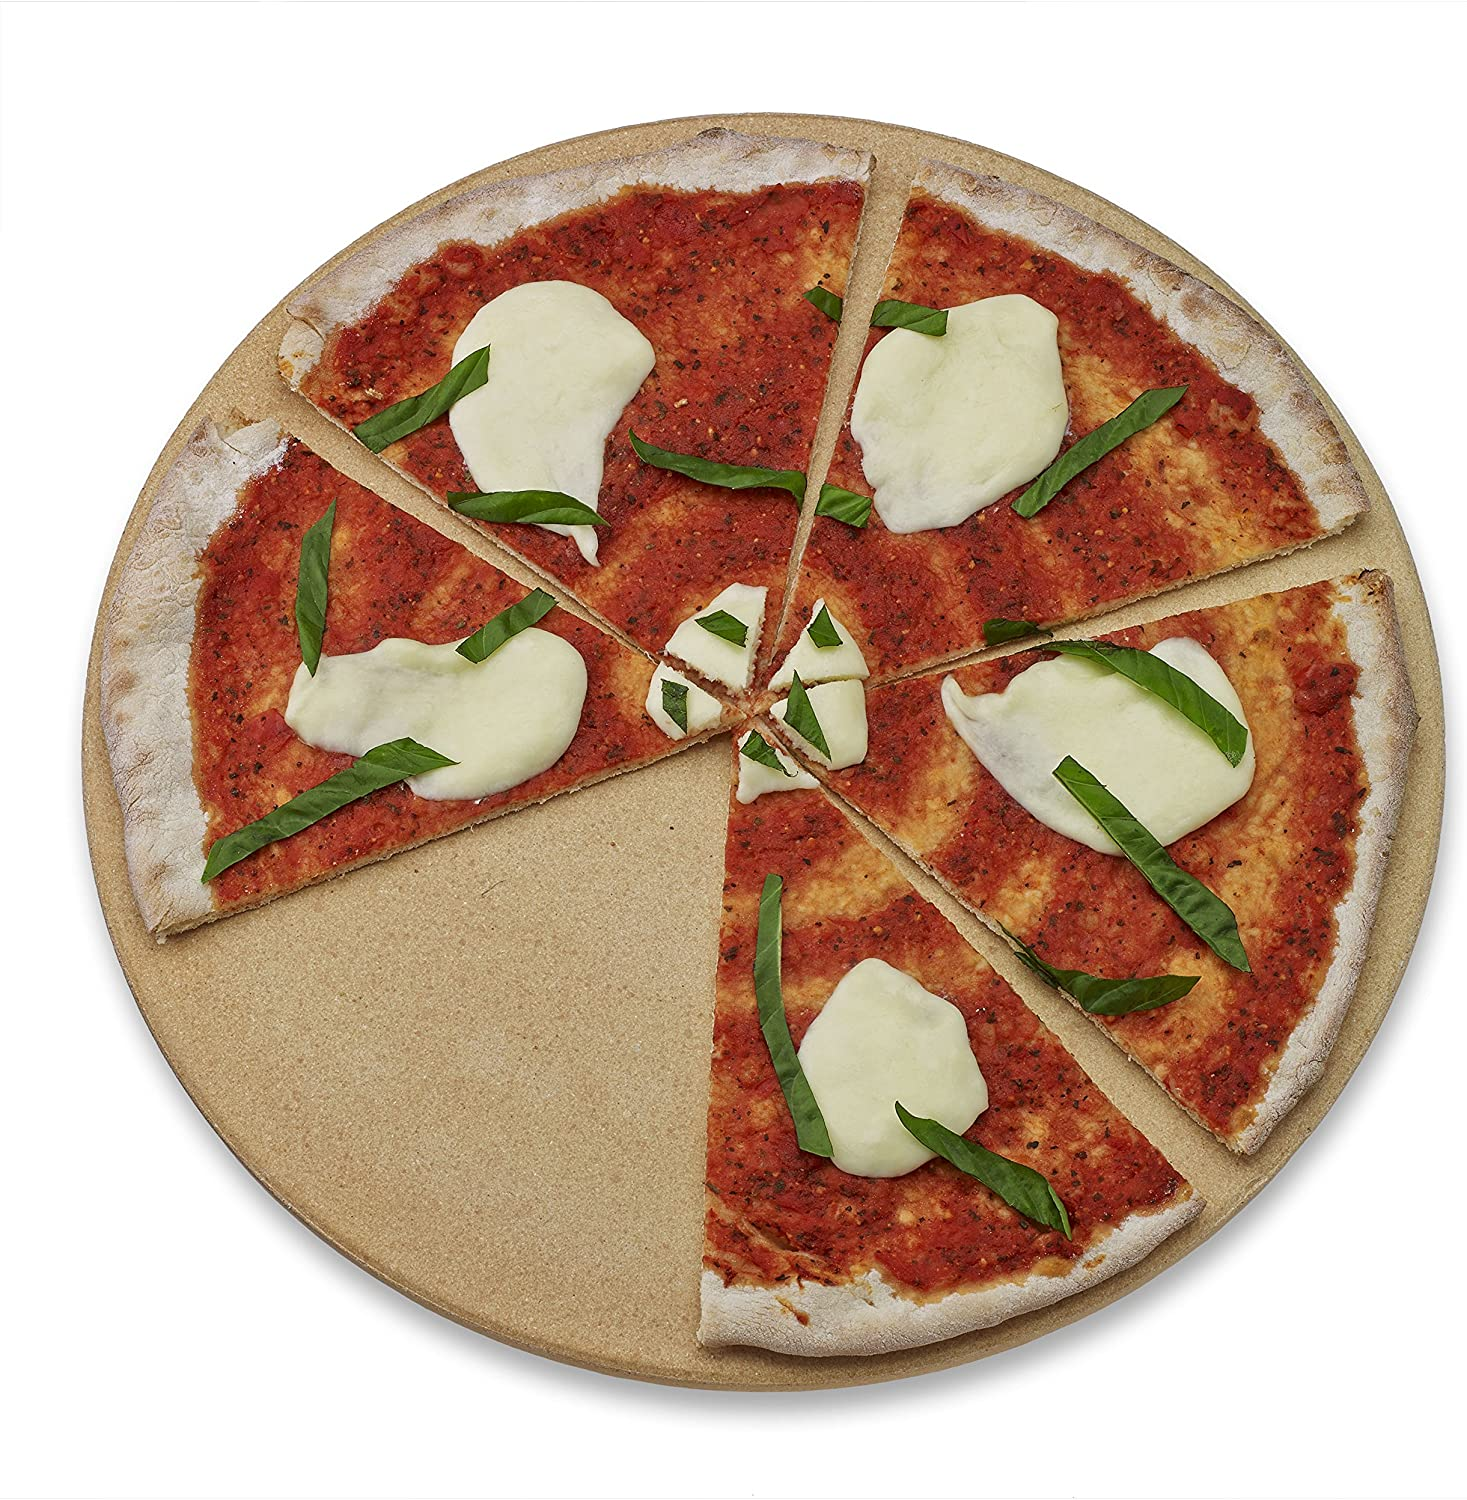 Sales of SALE items from new works Honey-Can-Do Oven Round Outstanding Pizza Stone